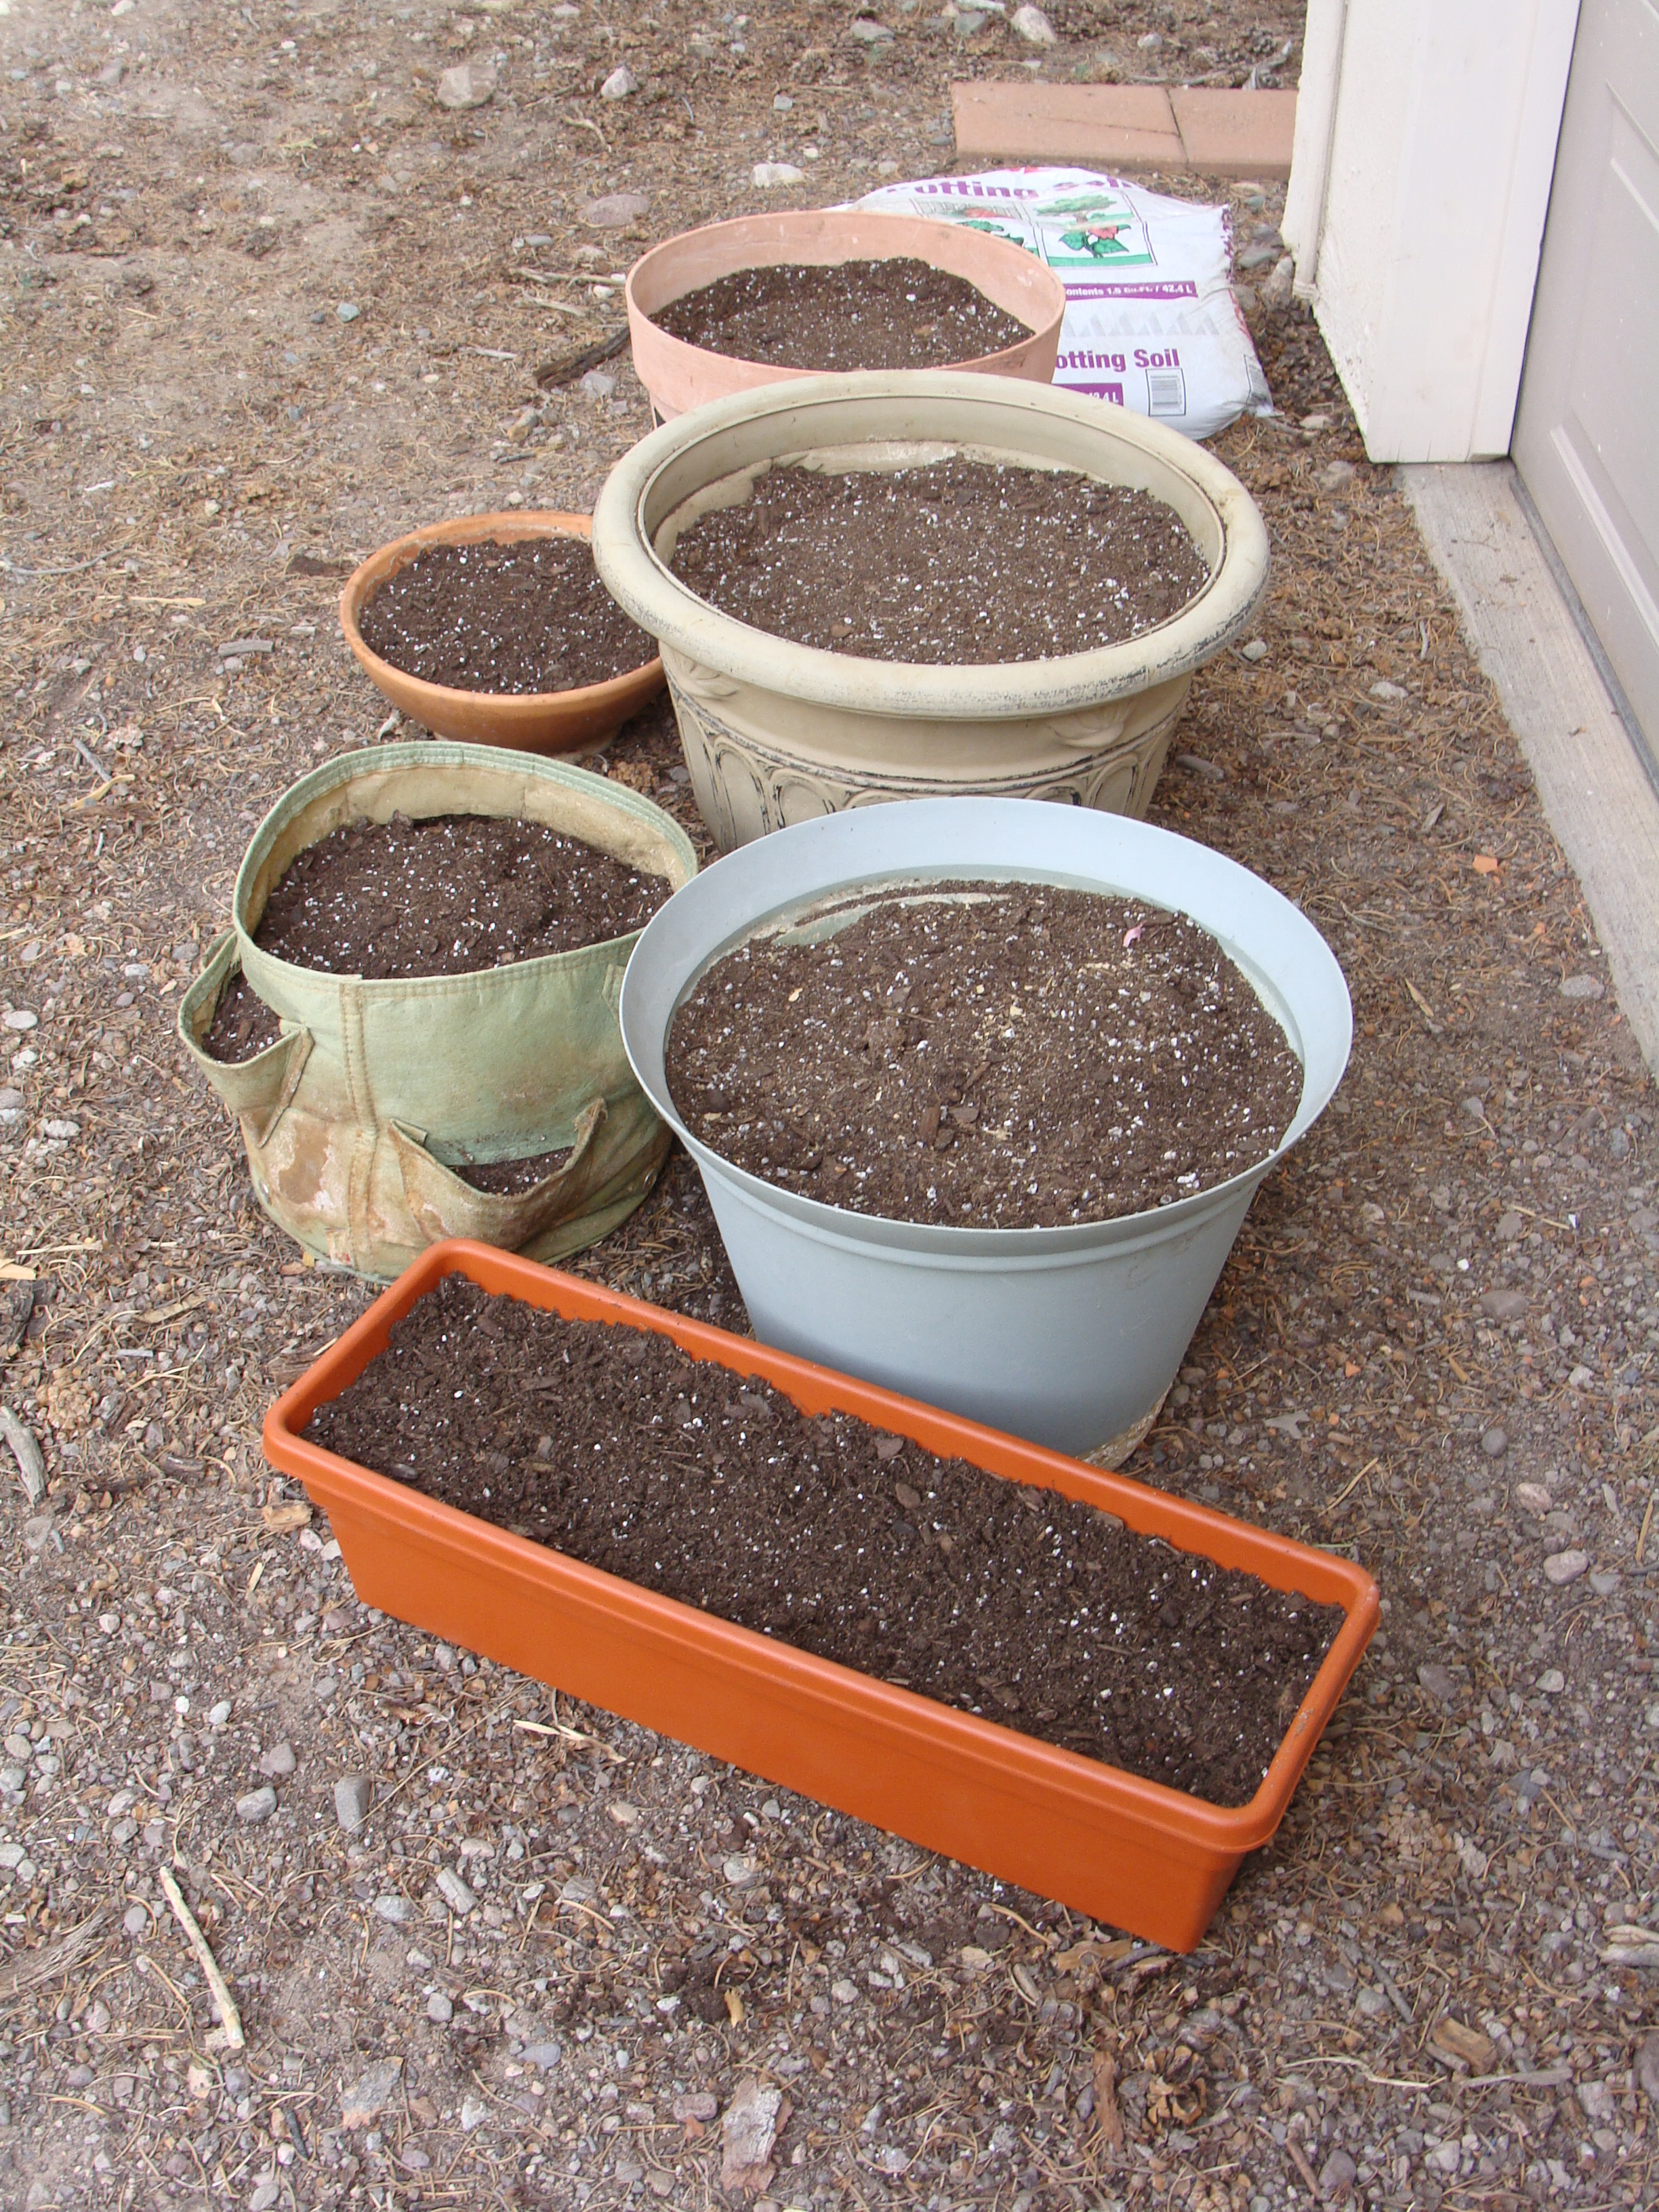 Planting Day has finally arrived ... pots ready (check) ...